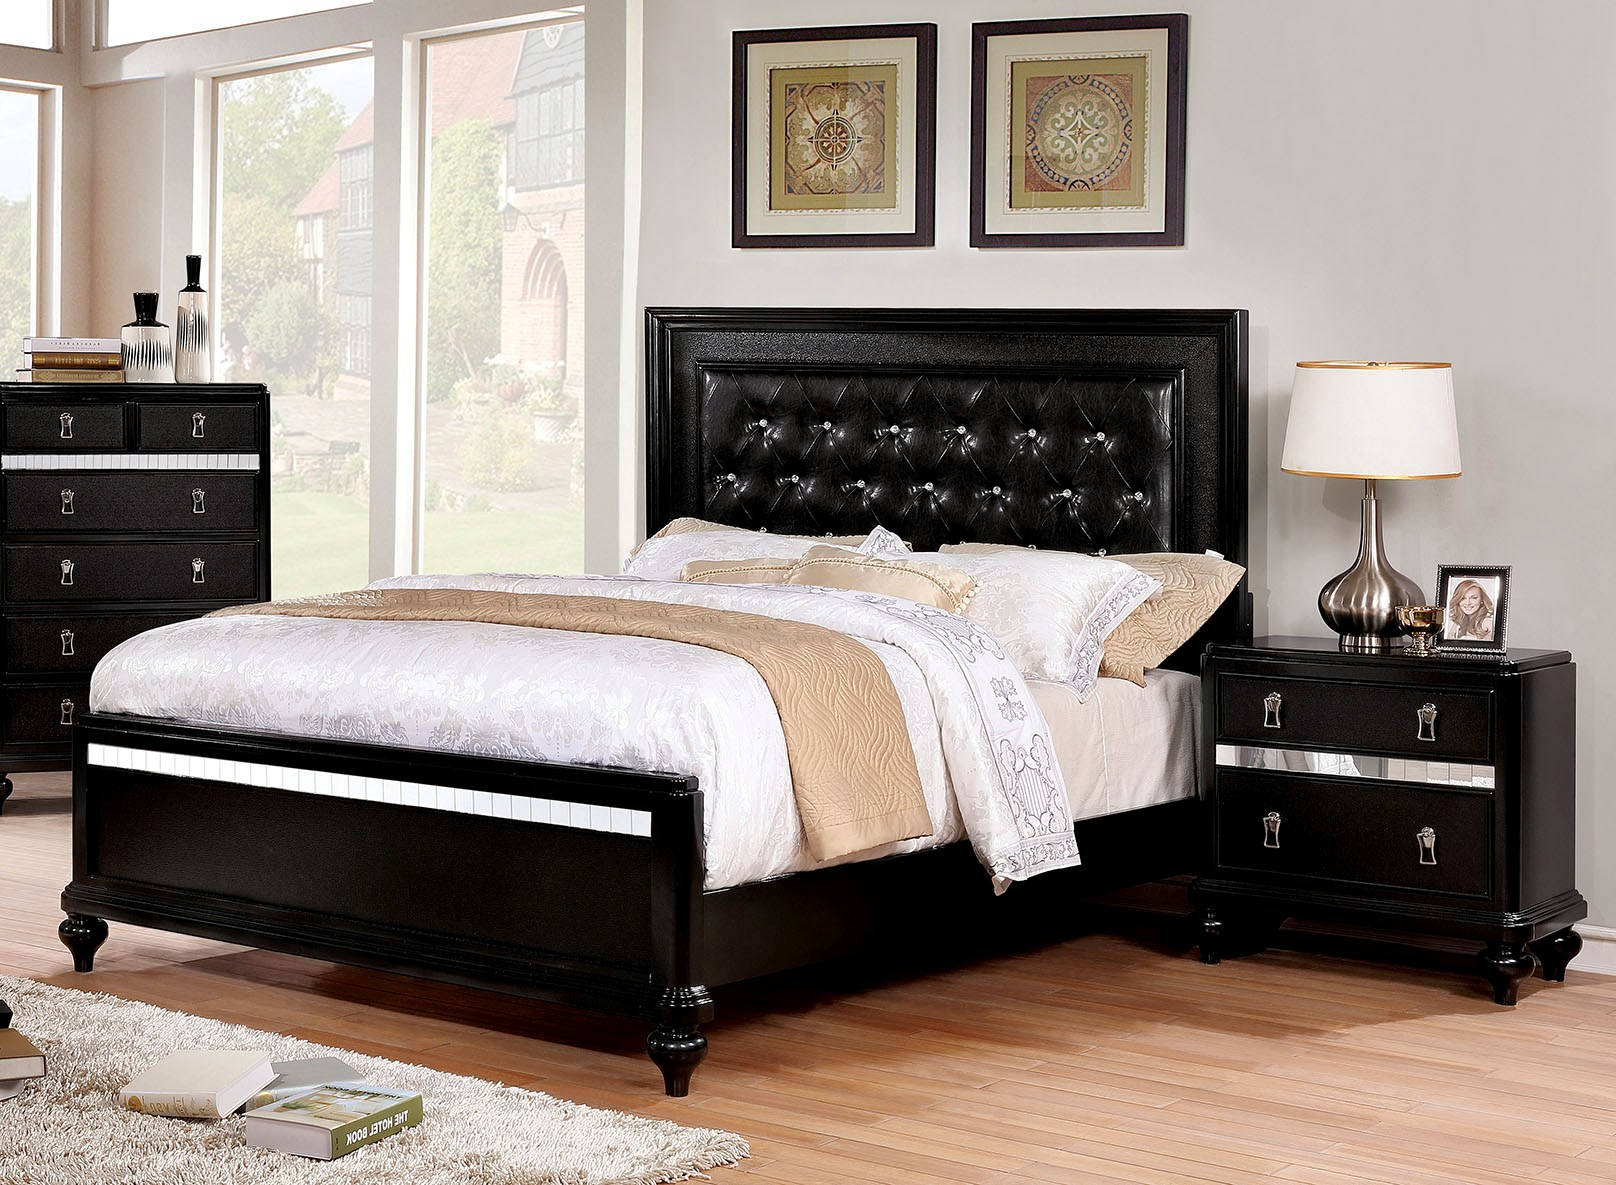 Furniture Of America Avior Black 2pc Bedroom Set with Cal King Bed